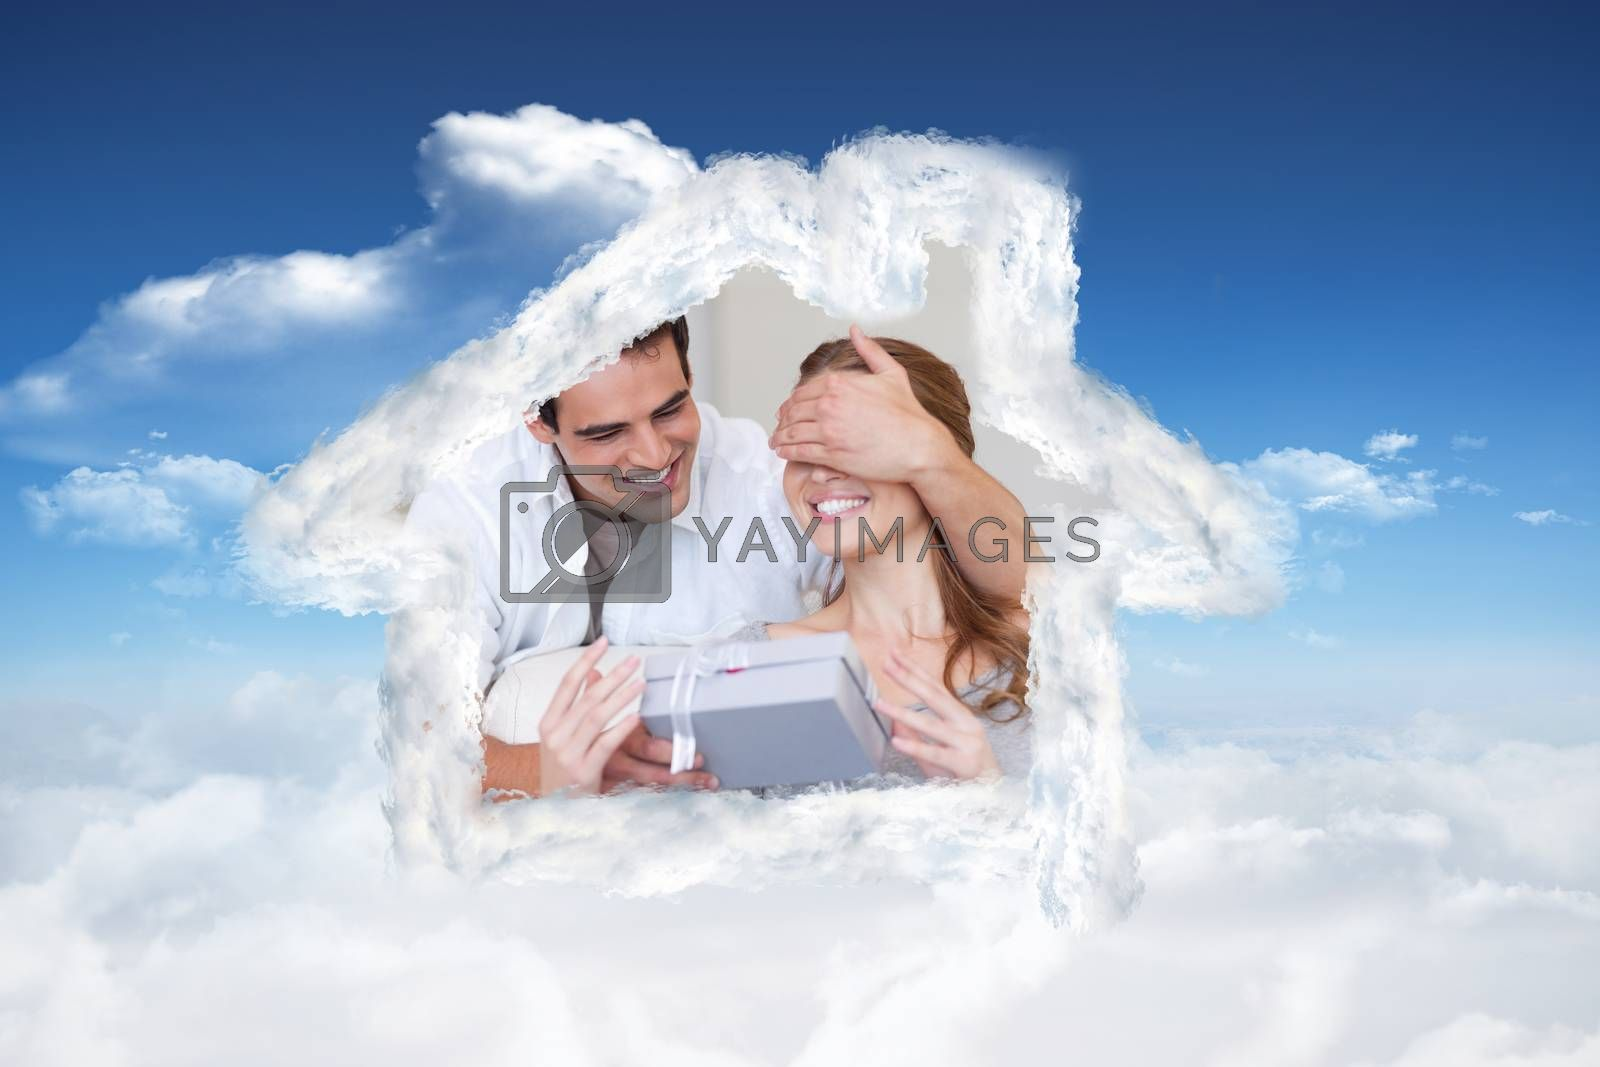 Man covering the eyes of his girlfriend while giving her a present against bright blue sky with clouds